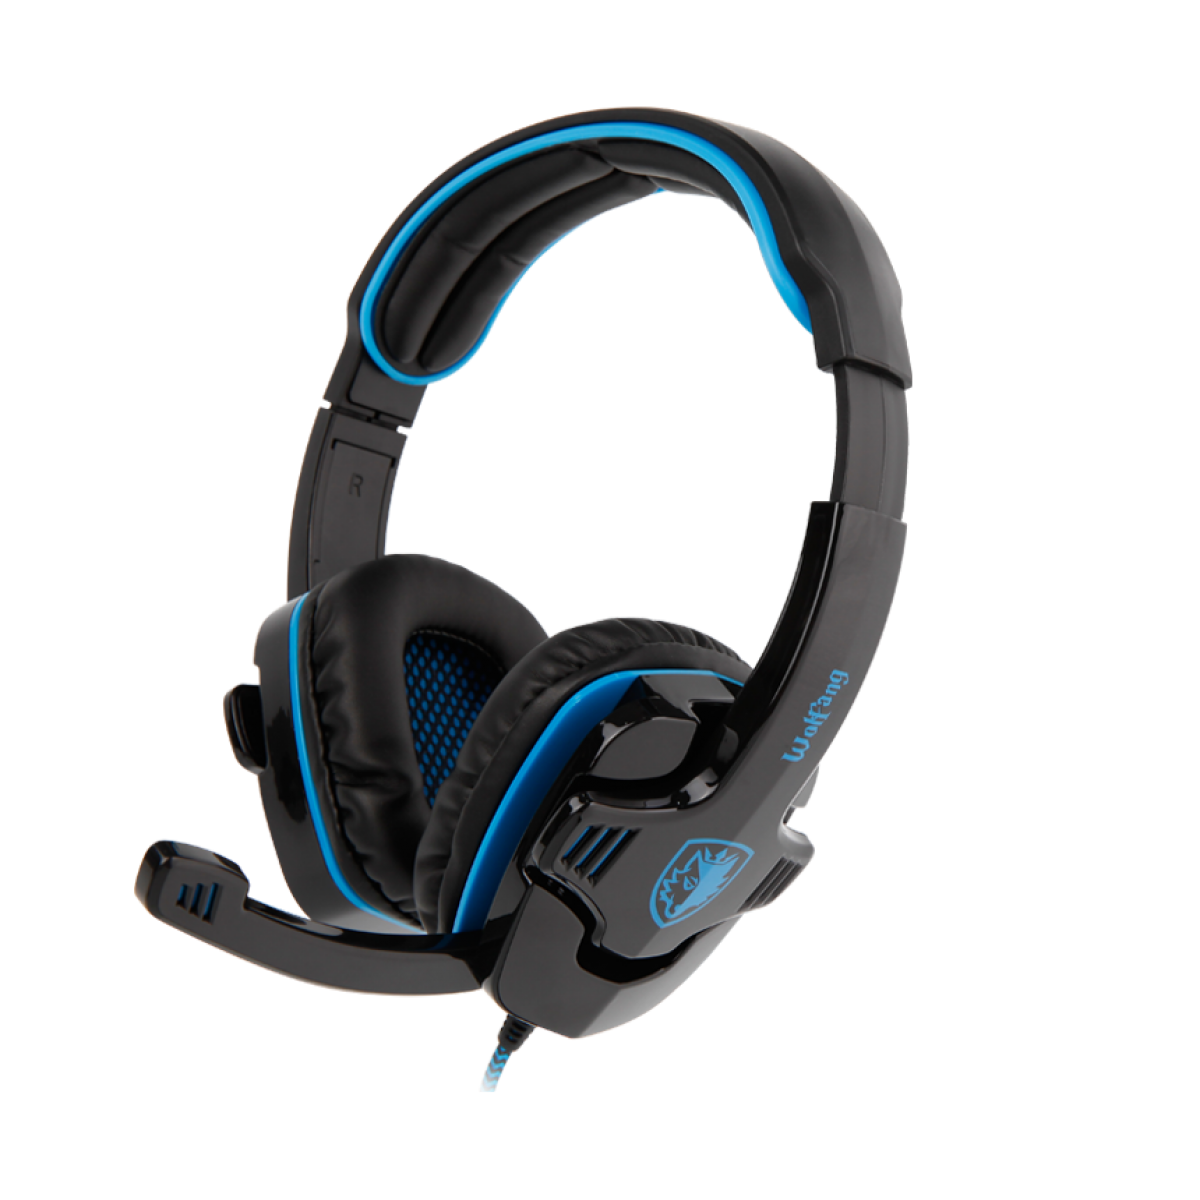 Headset Gamer Sades Sa-901 Wolfang, Stereo, Black/Blue, SA-901